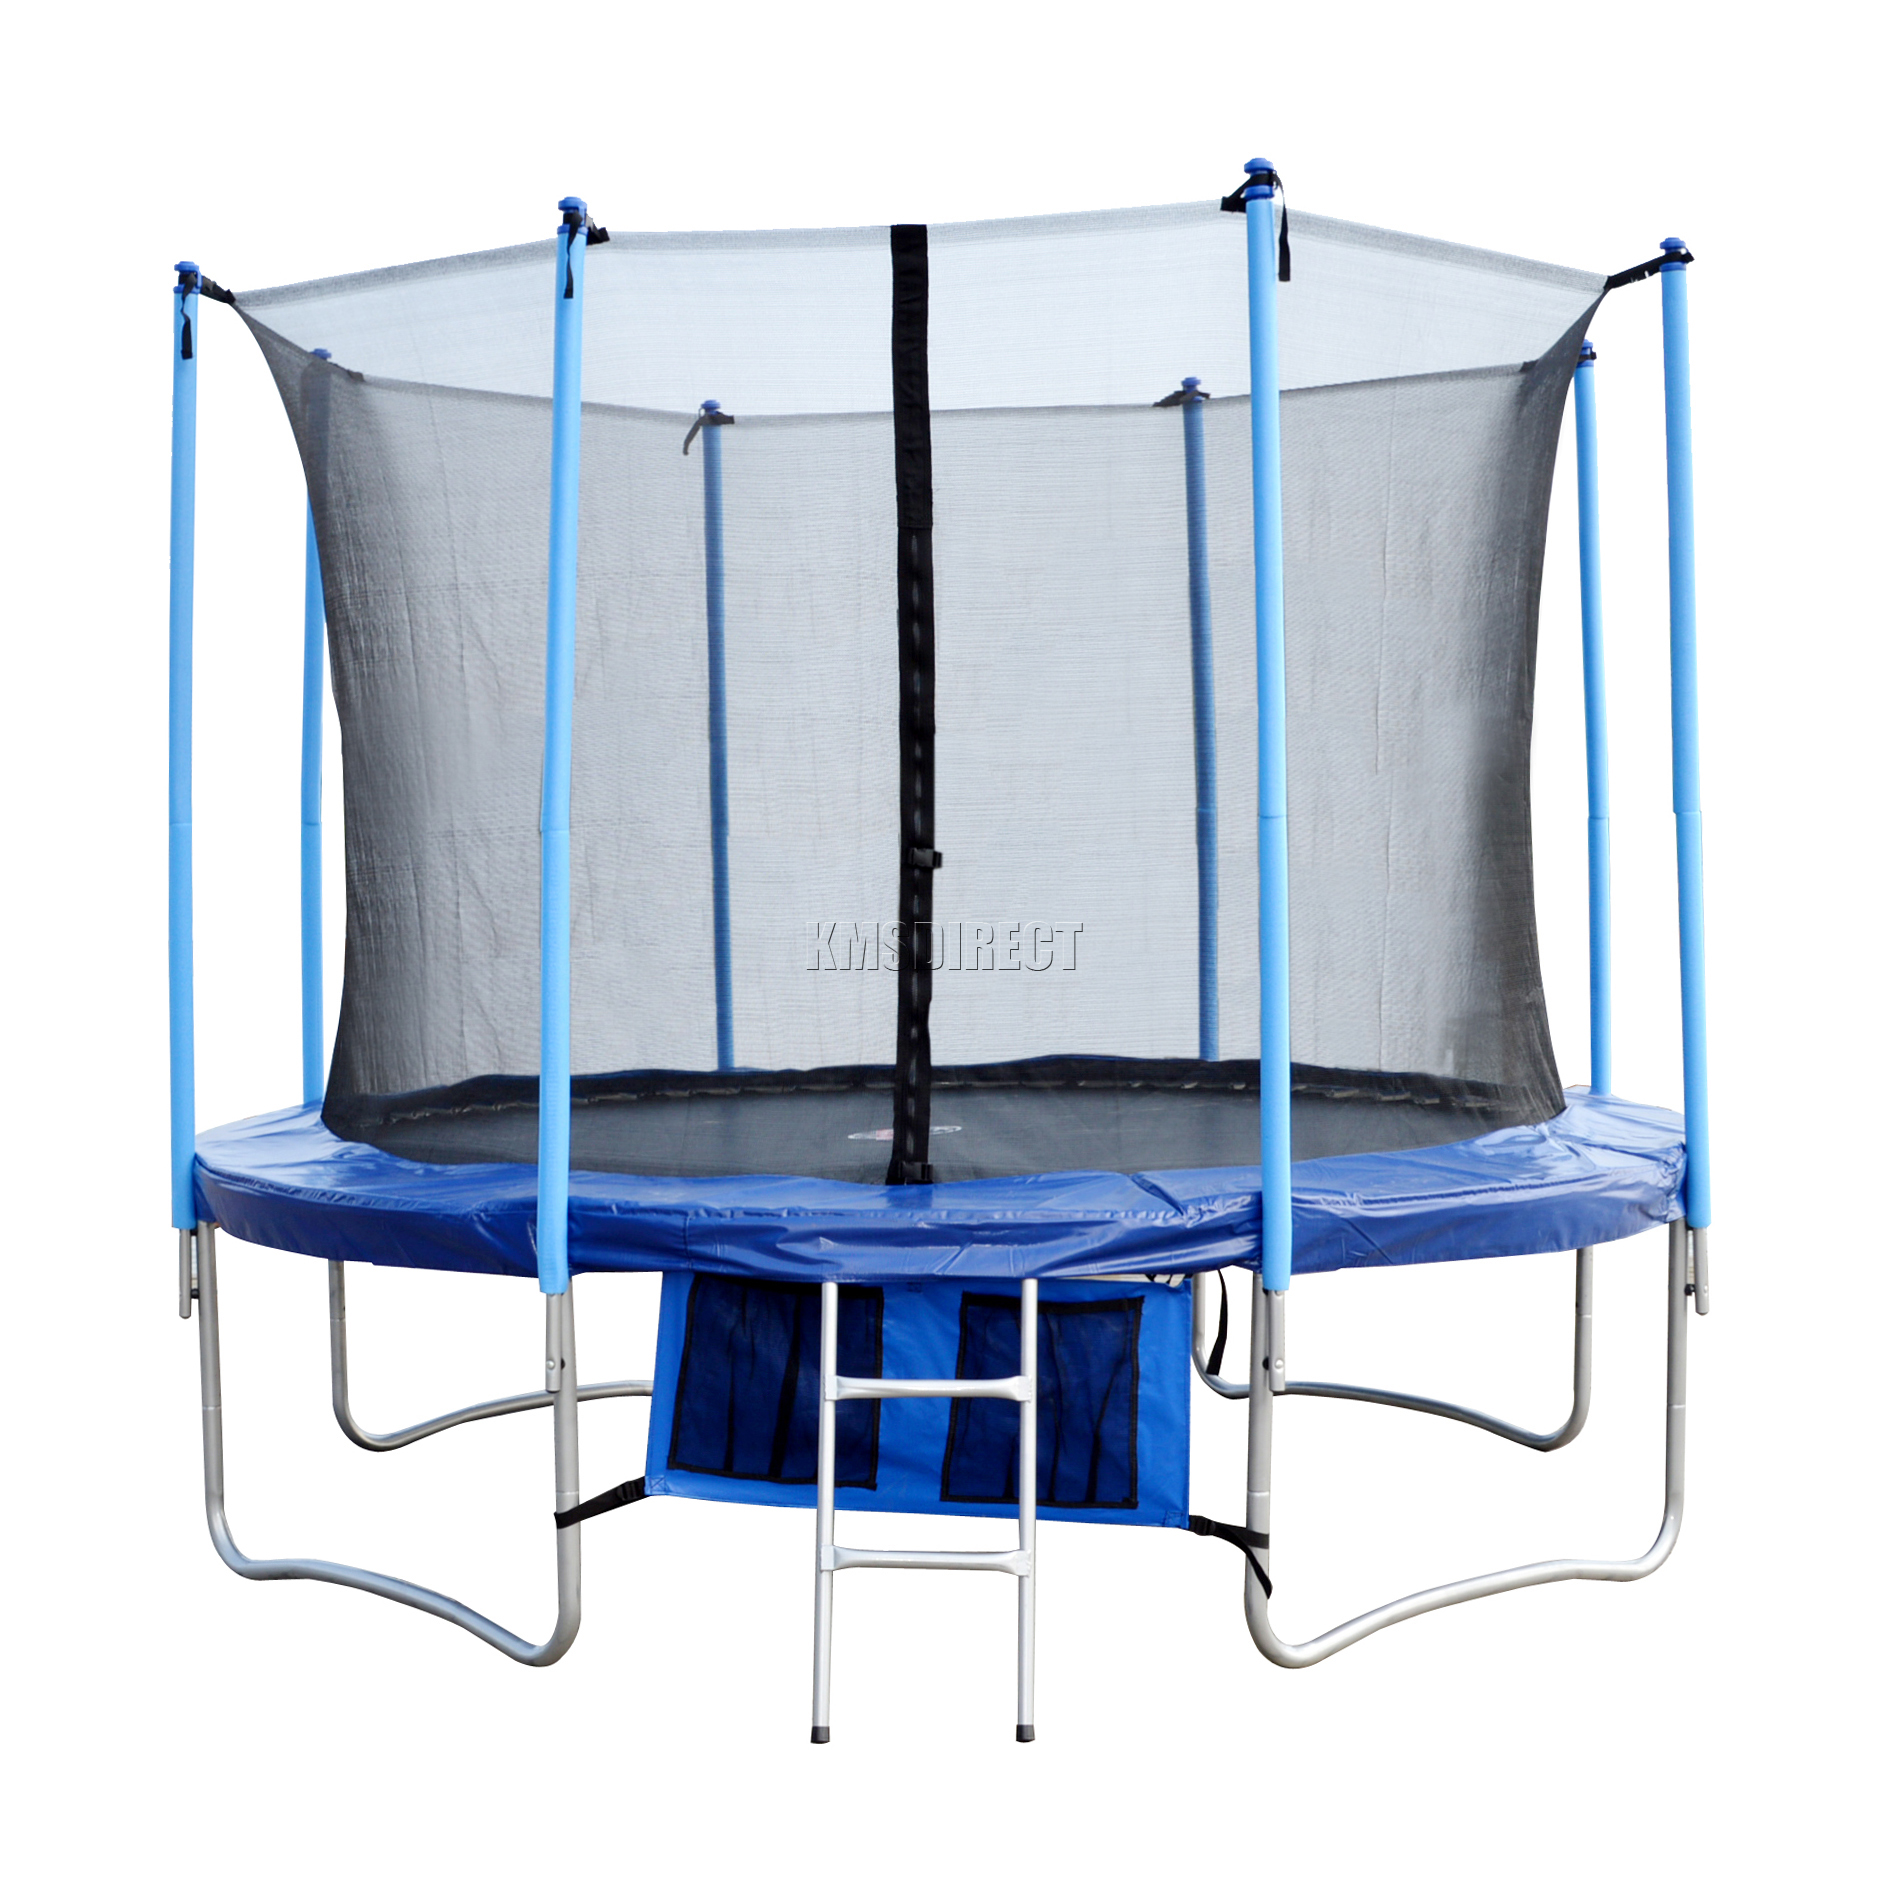 New 10ft Trampoline With Safety Enclosure Net Surround